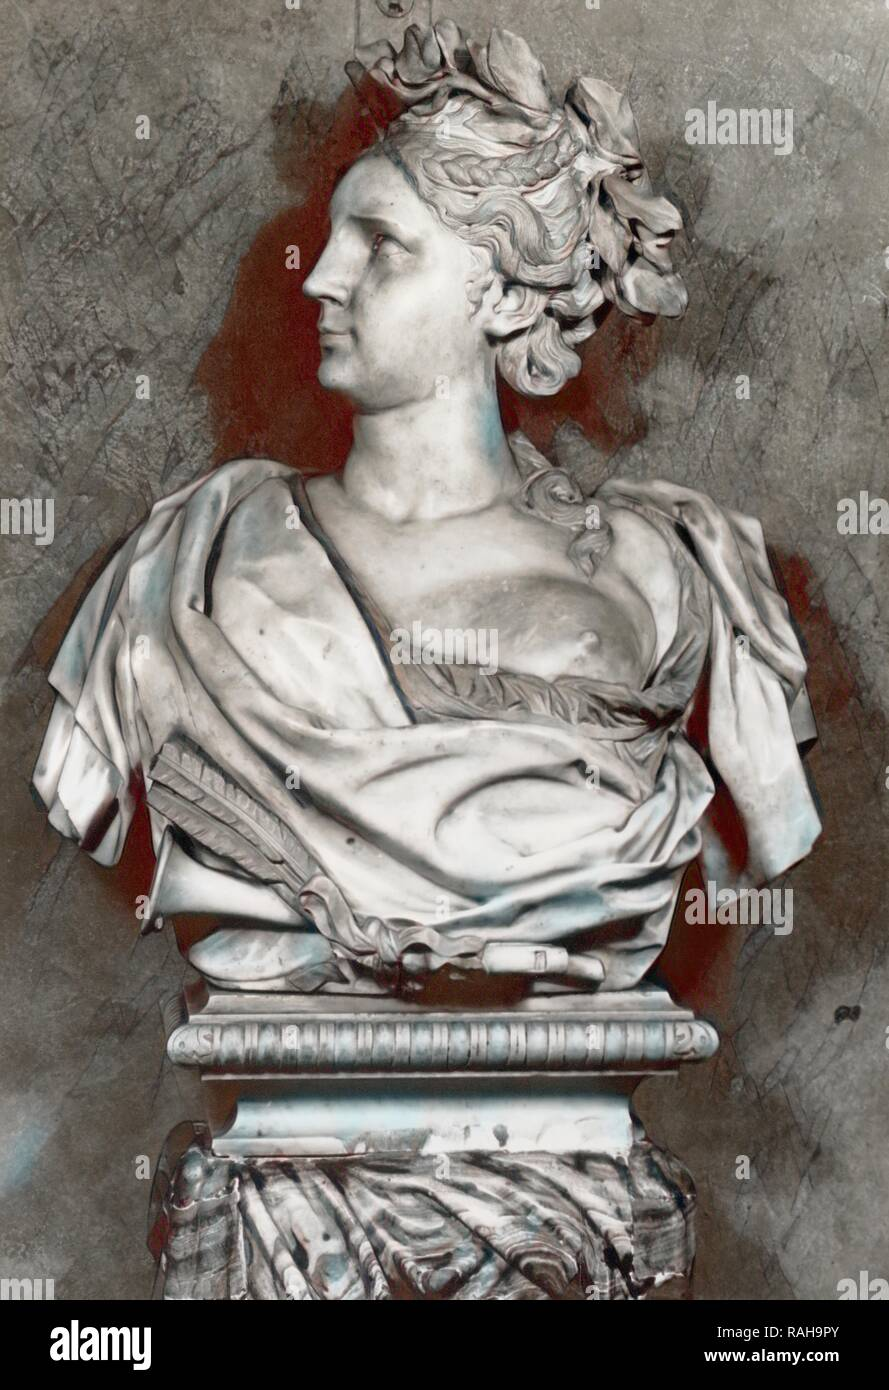 17th century marble bust School of Bernini, The French and Company photographic archive of fine and decorative arts reimagined - Stock Image